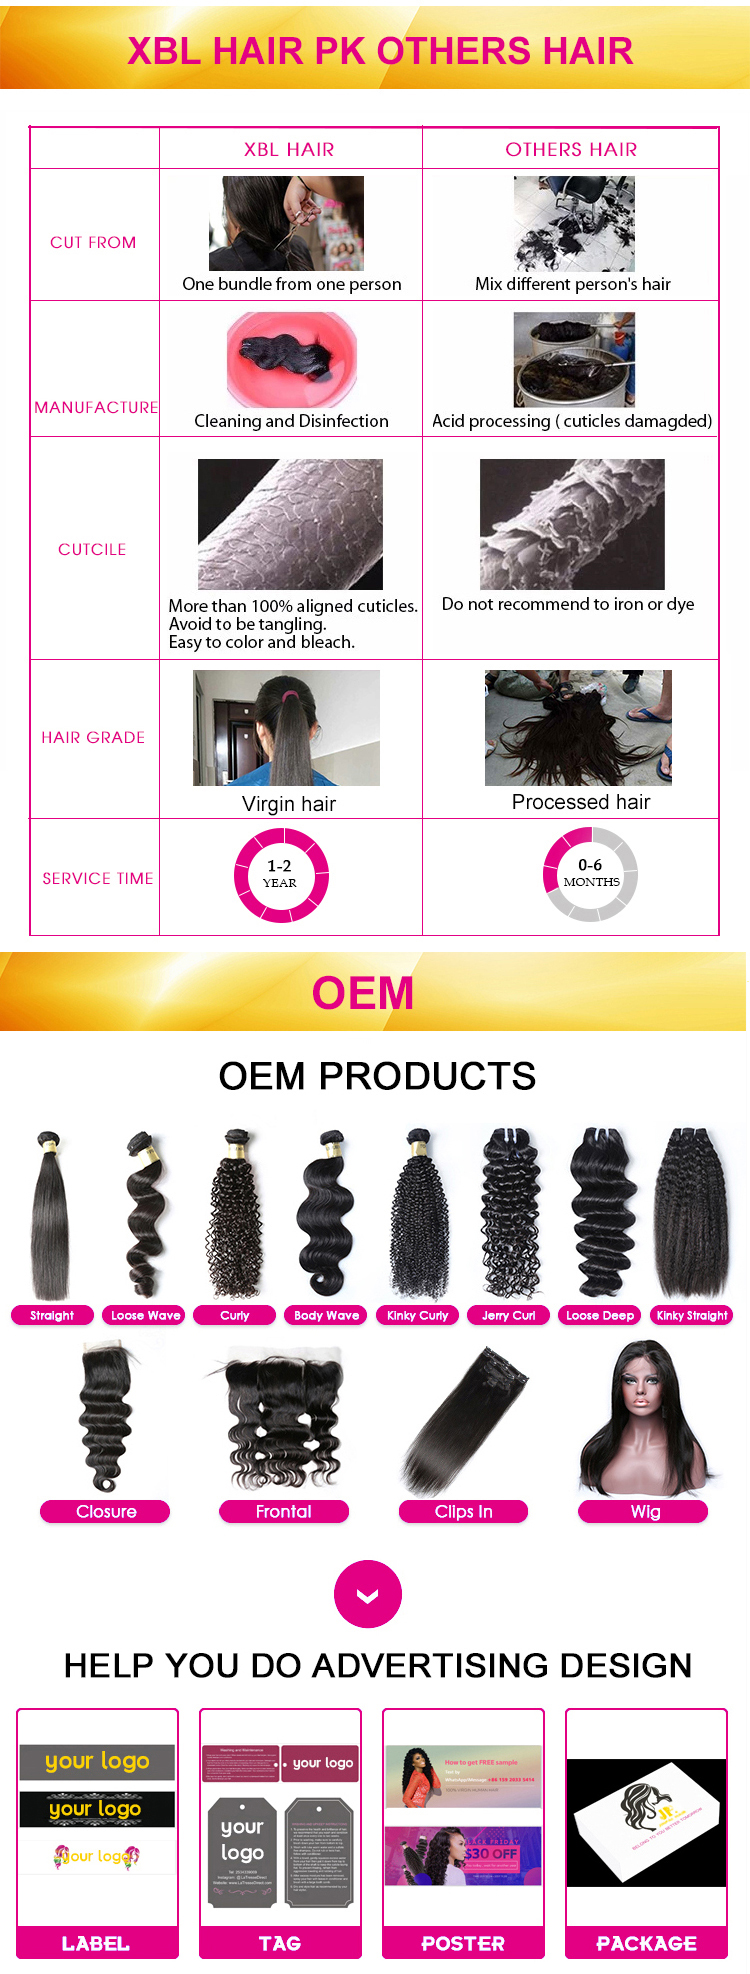 Free sample hair bundles wholesale virgin brazilian hair bundles,On Sale Double Machine Wefted hair extensions for white women